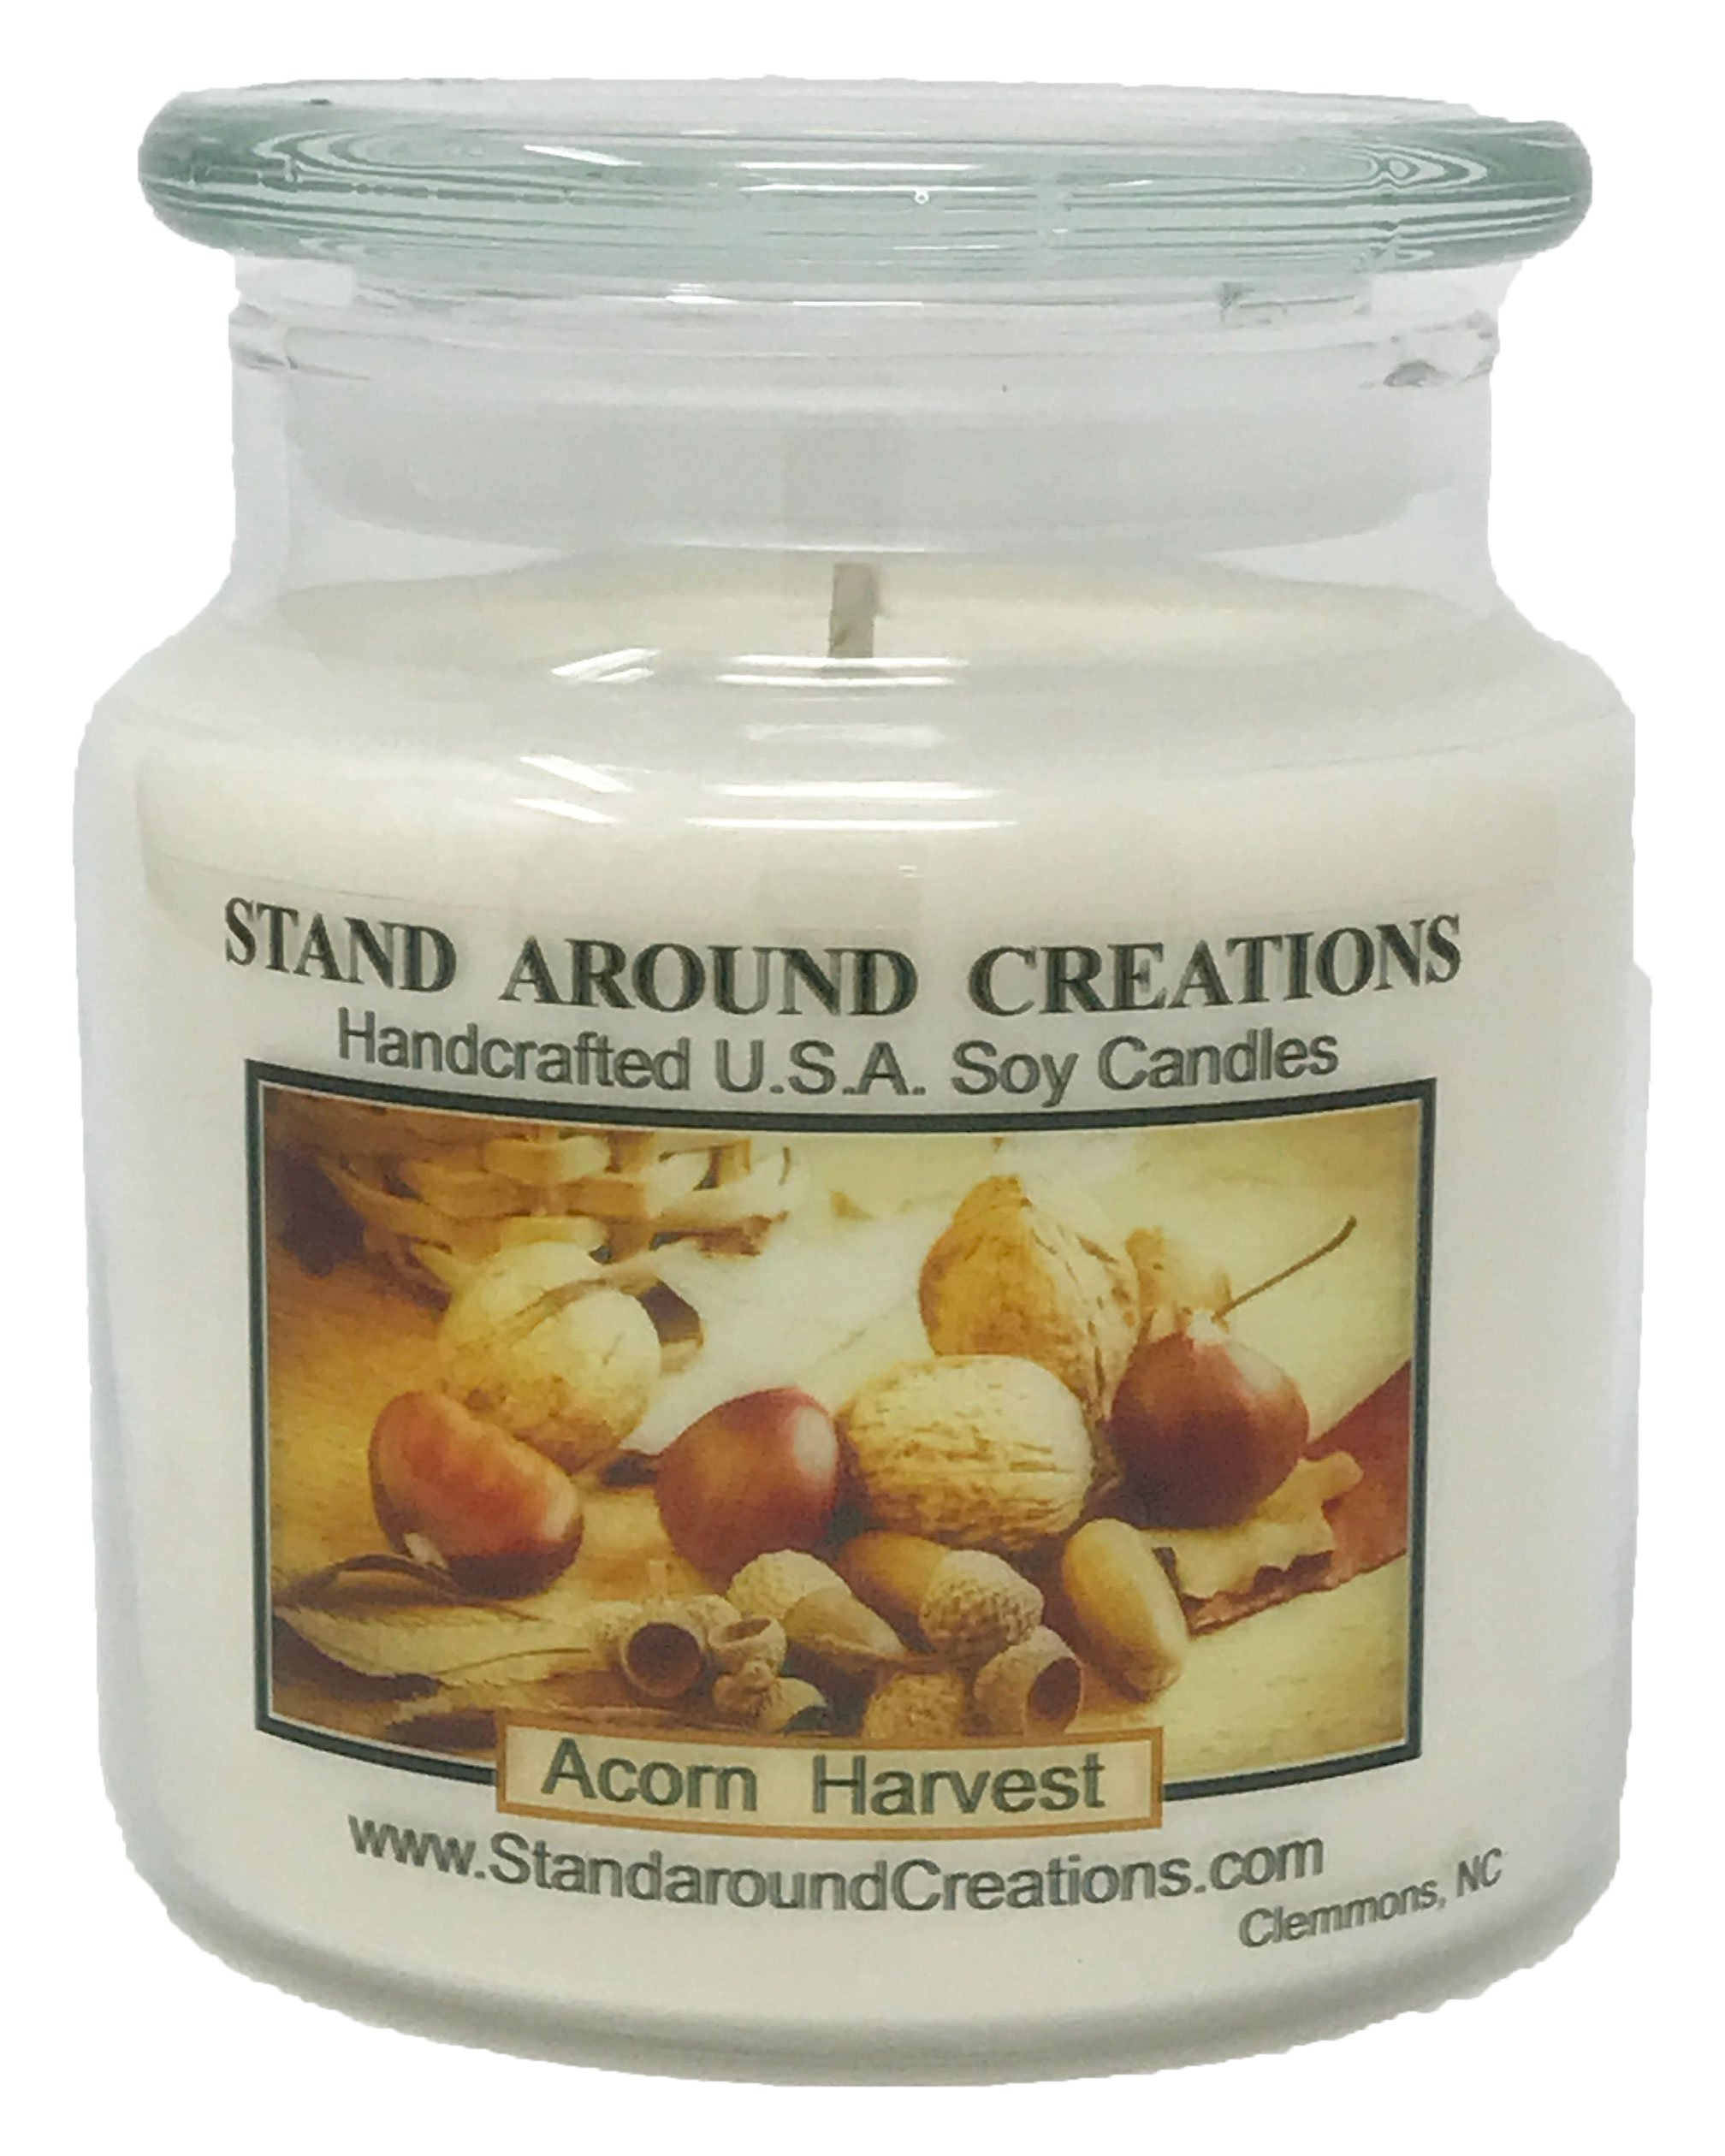 Premium 100% All Natural Soy Wax Aromatherapy Candle - 16 oz Apothecary - Acorn Harvest: This fragrance is a warm earthy, nutty aroma with rich buttery vanilla. Made essential oils.